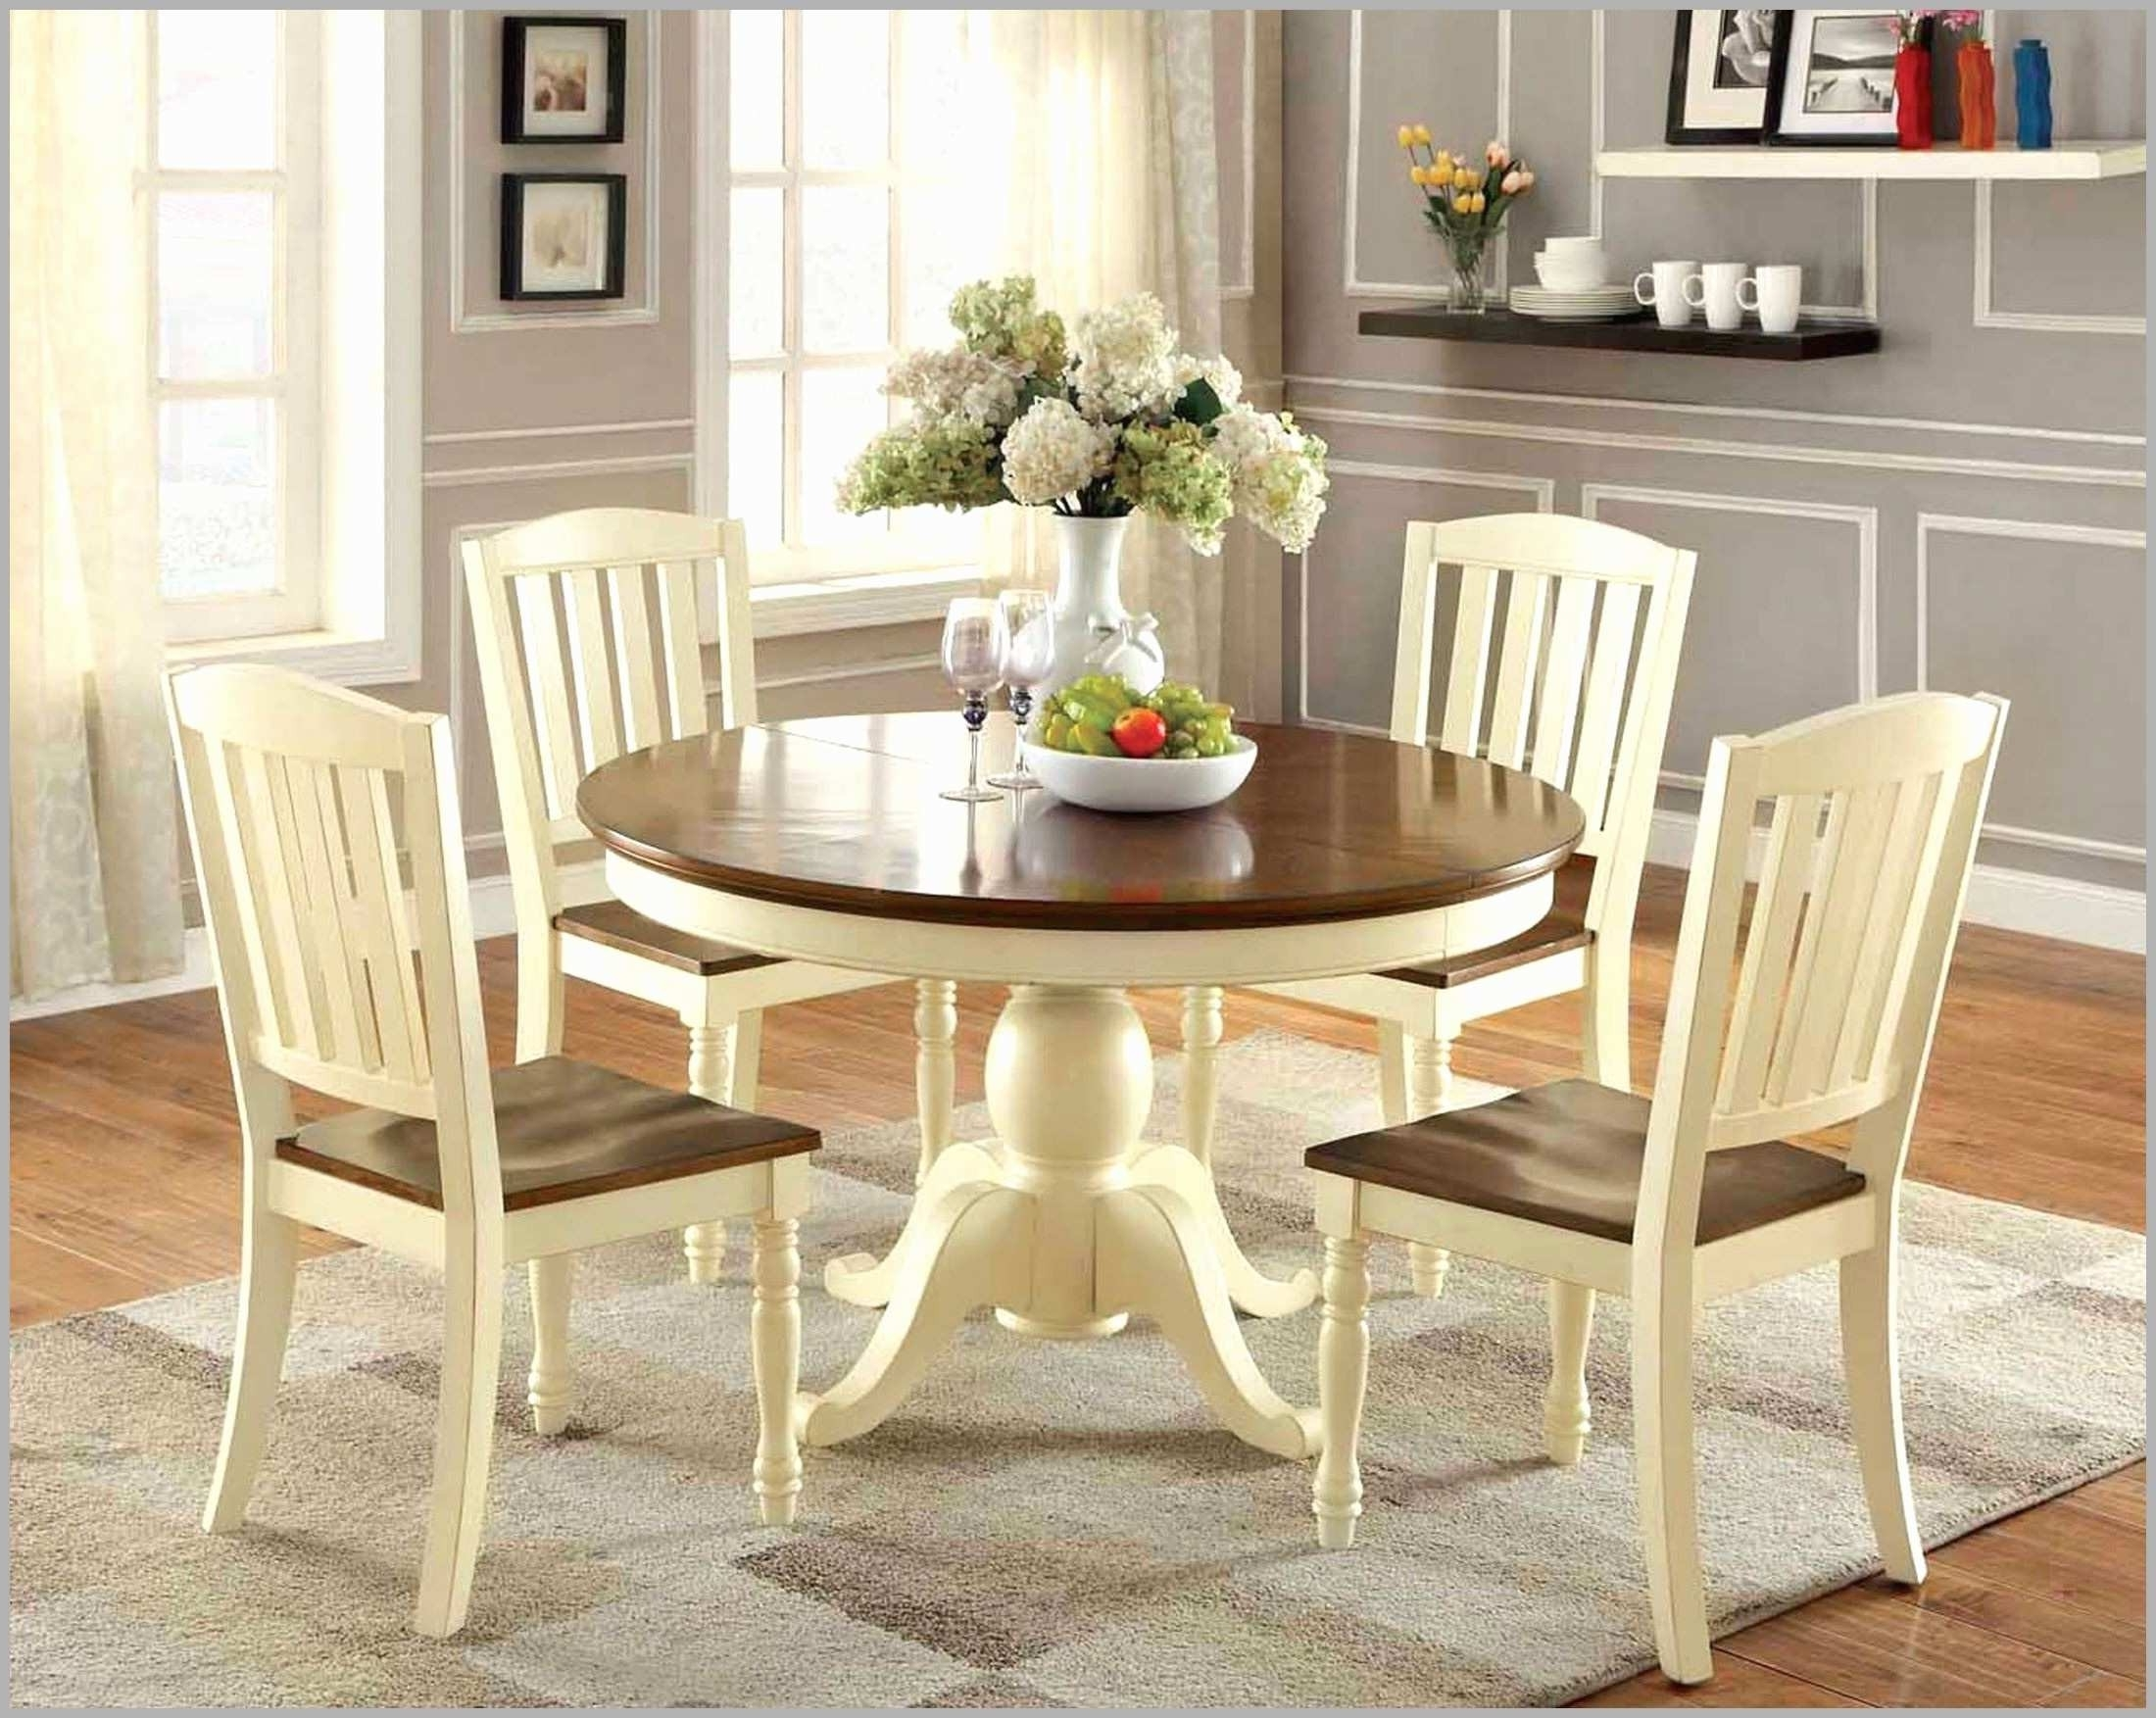 Latest Extendable Dining Room Table Best Of Oval Extending Dining Table Throughout White Oval Extending Dining Tables (View 10 of 25)